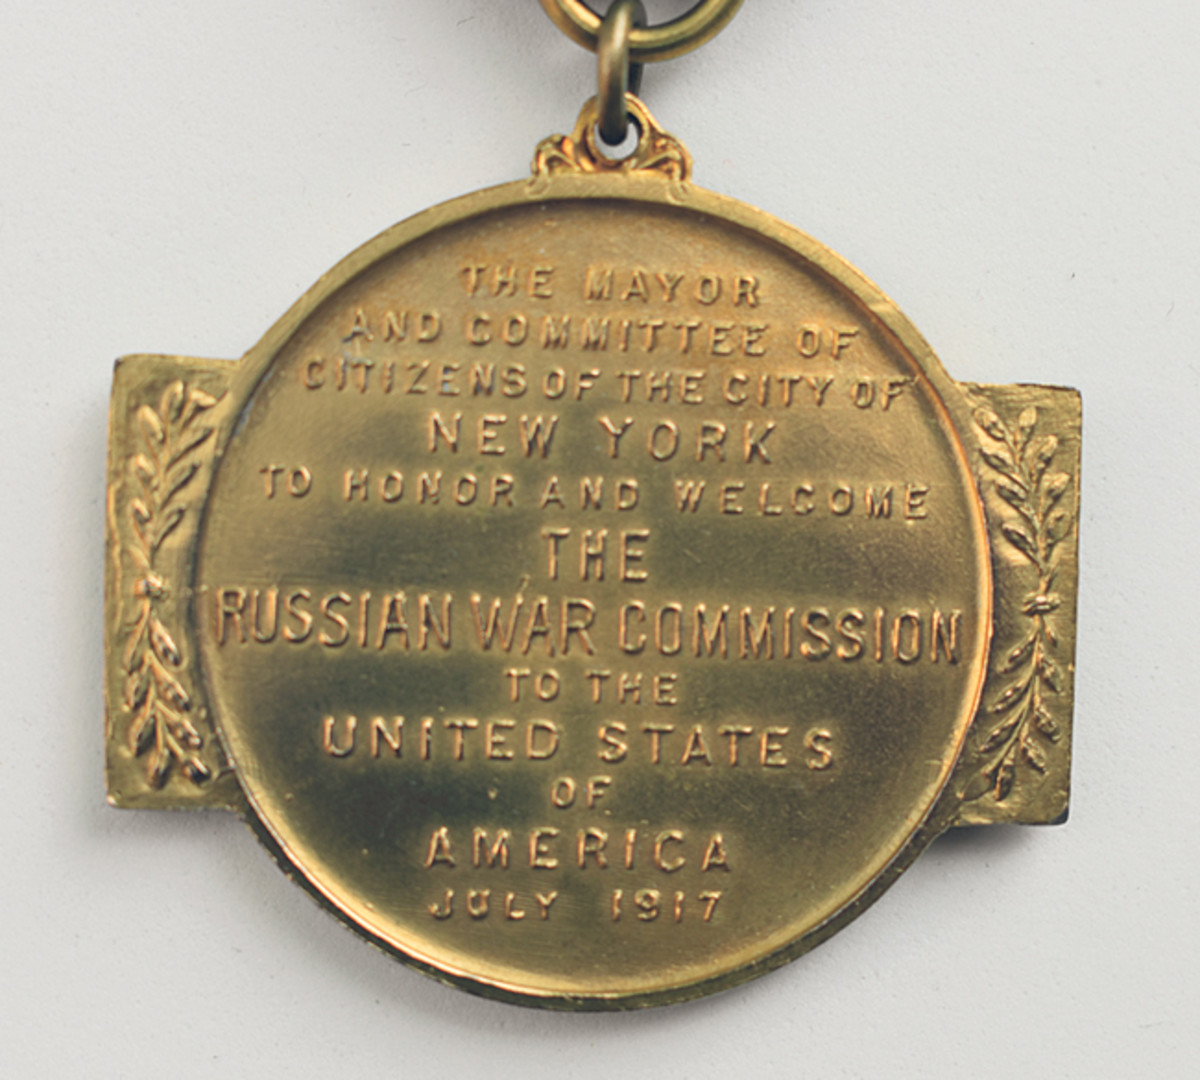 As additional Allied Commissions visited, medals noted the month and year of their arrival.